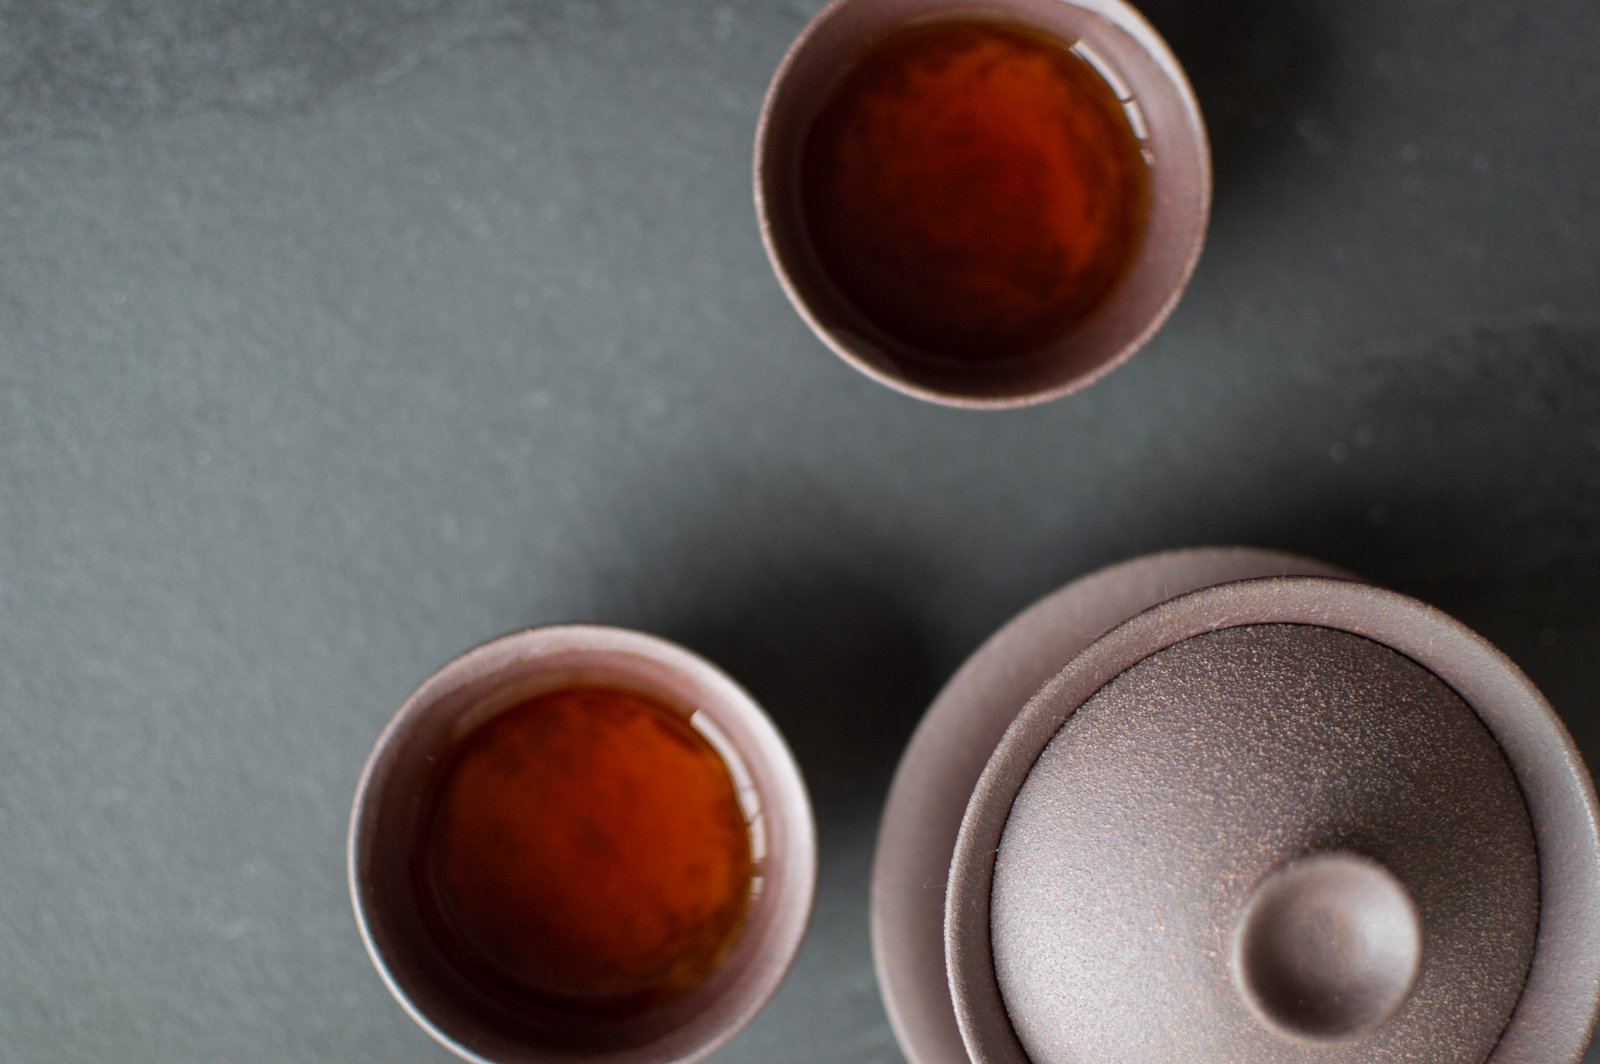 Purion Gaiwan and cups